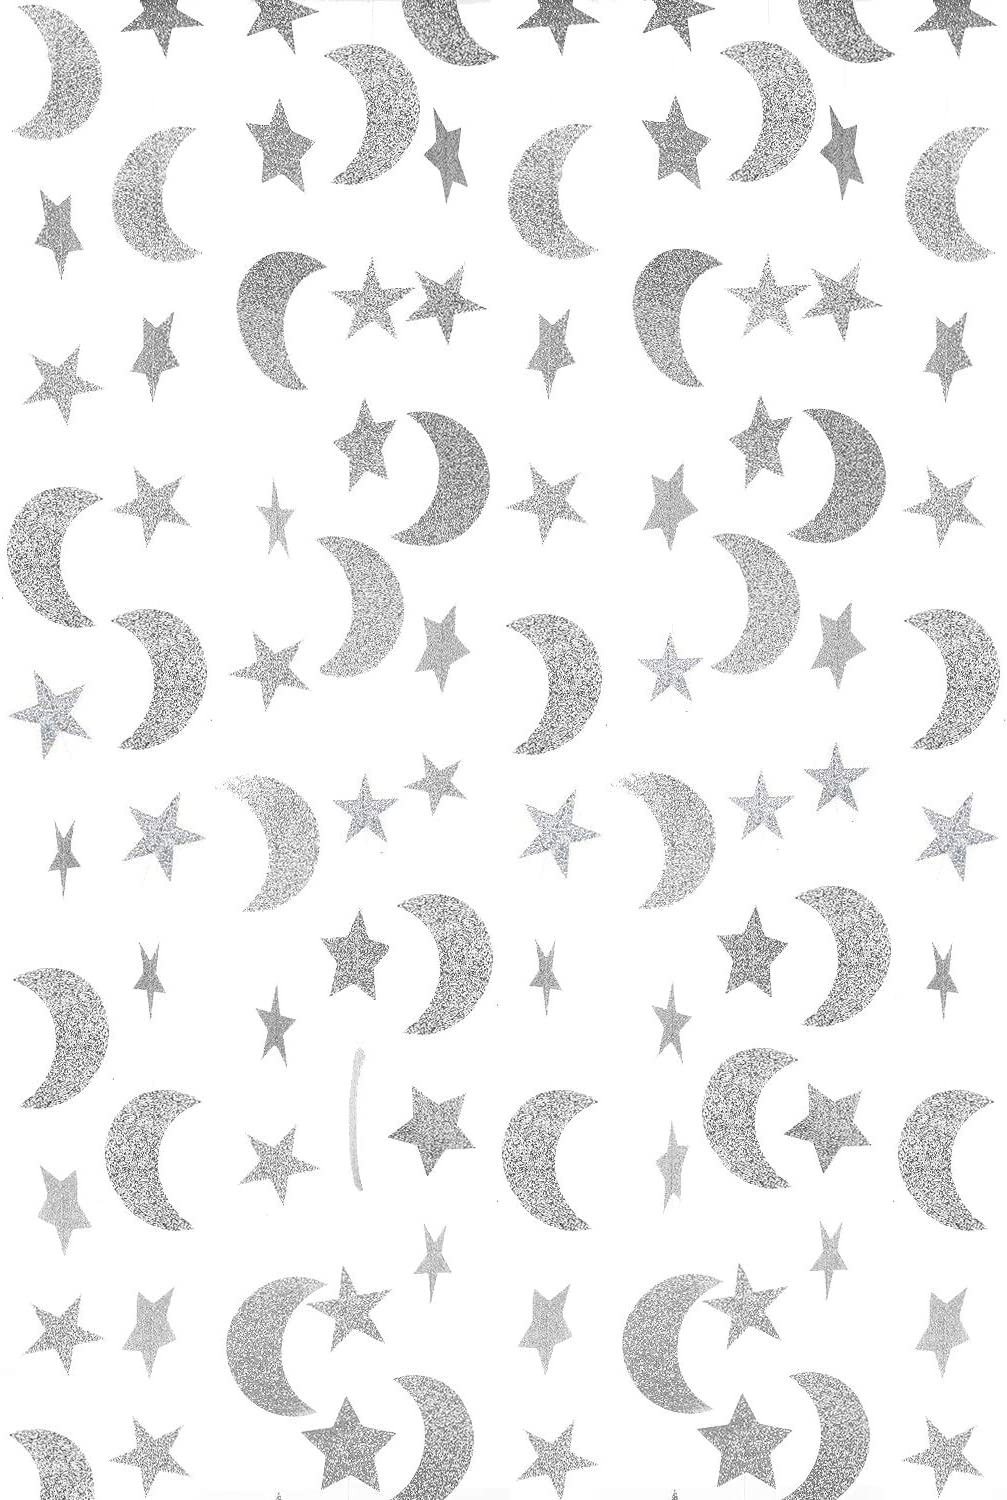 WEVEN Silver Glitter Moon Star Paper Garland, Twinkle Twinkle Little Star and Moon Banner Hanging Party Decorations for Wedding, Thanksgiving, Baby Shower, Birthday Party, 20 Feet in Total